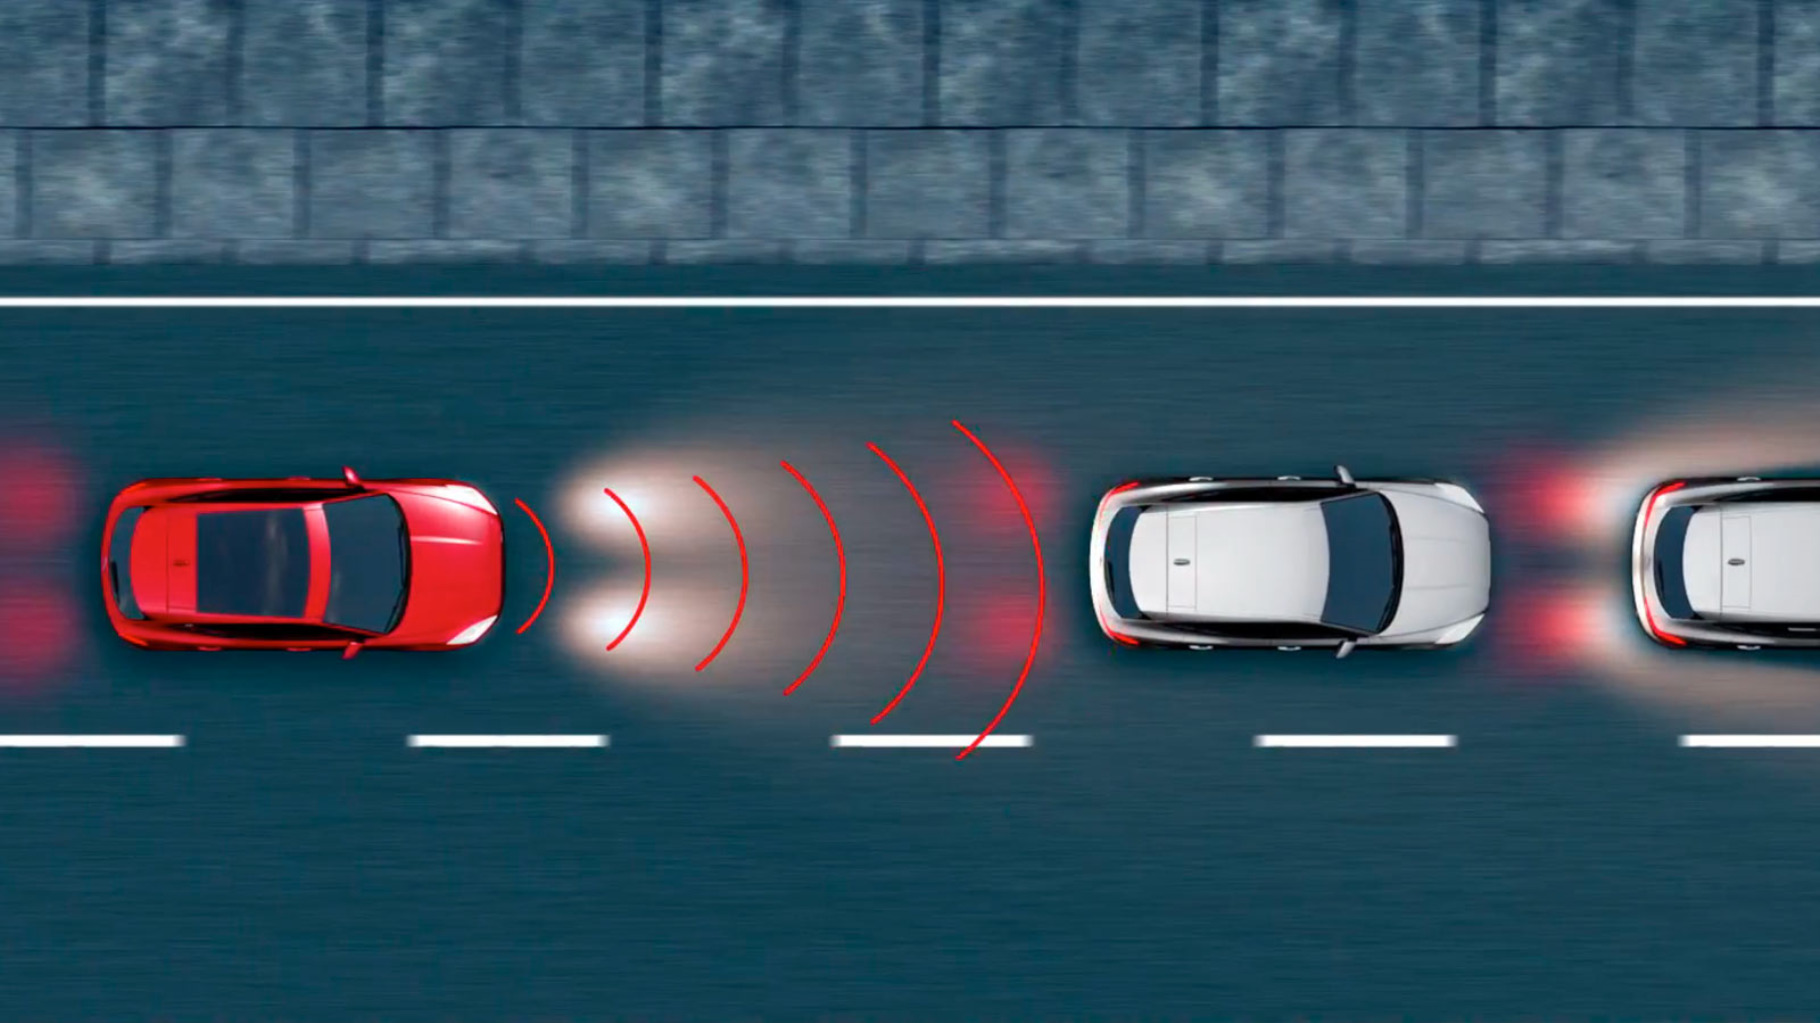 Diagram showing Jaguar E-Pace Emergency Braking System detecting a potential collision.